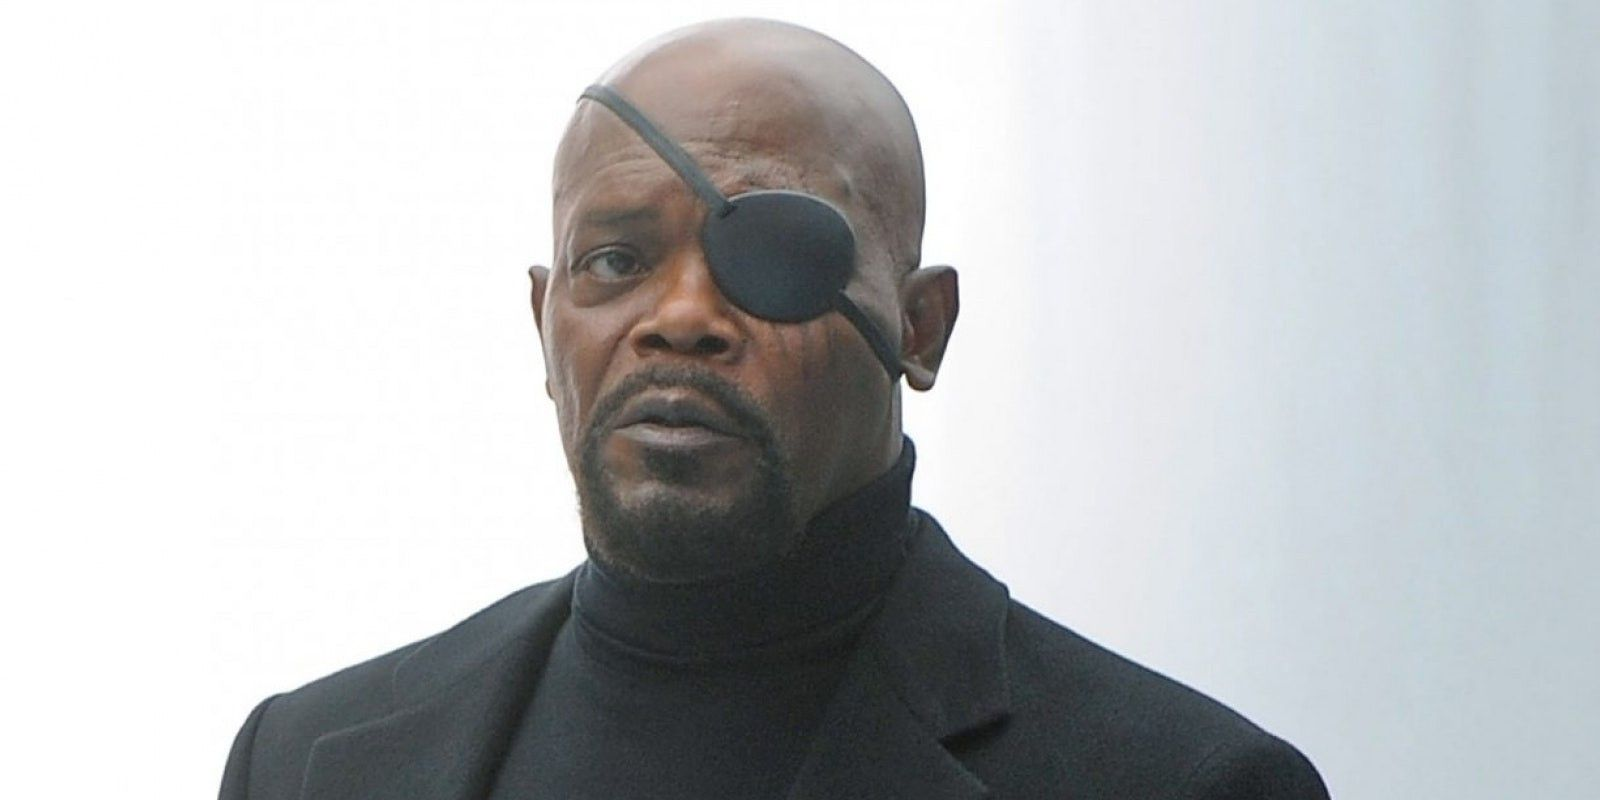 Skrull Nick Fury Fan Art Makes Us Want So Much More of This